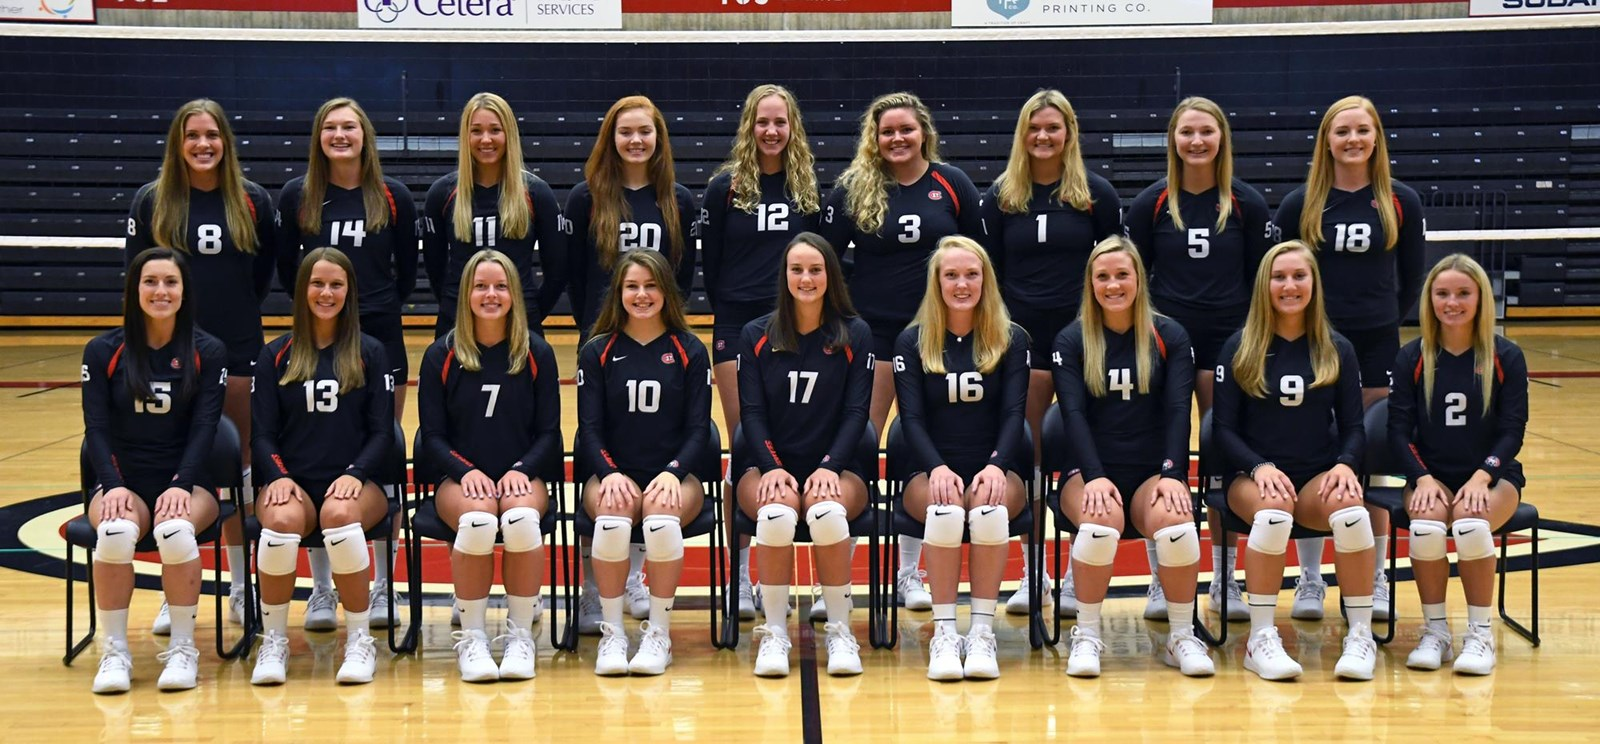 2019 20 Women S Volleyball Roster St Cloud State University Athletics